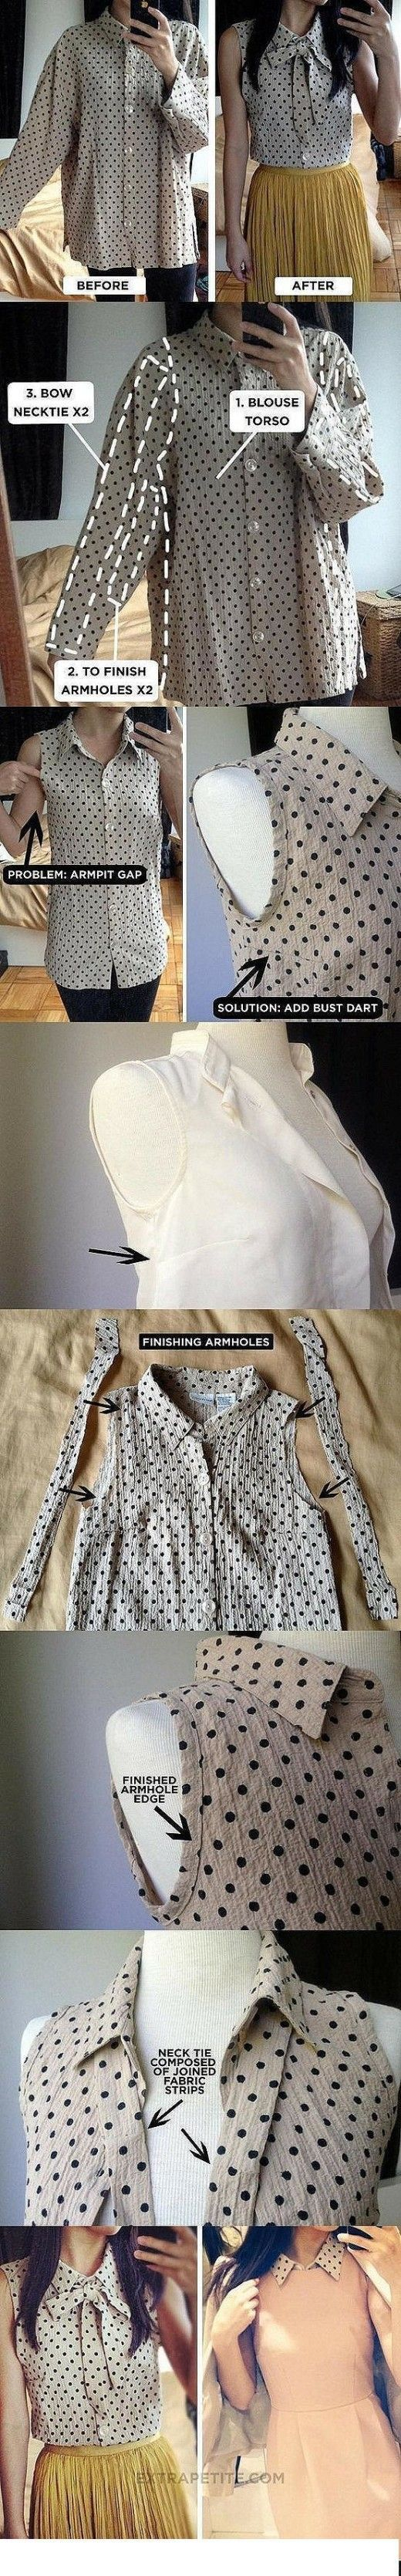 Reuse of old clothes